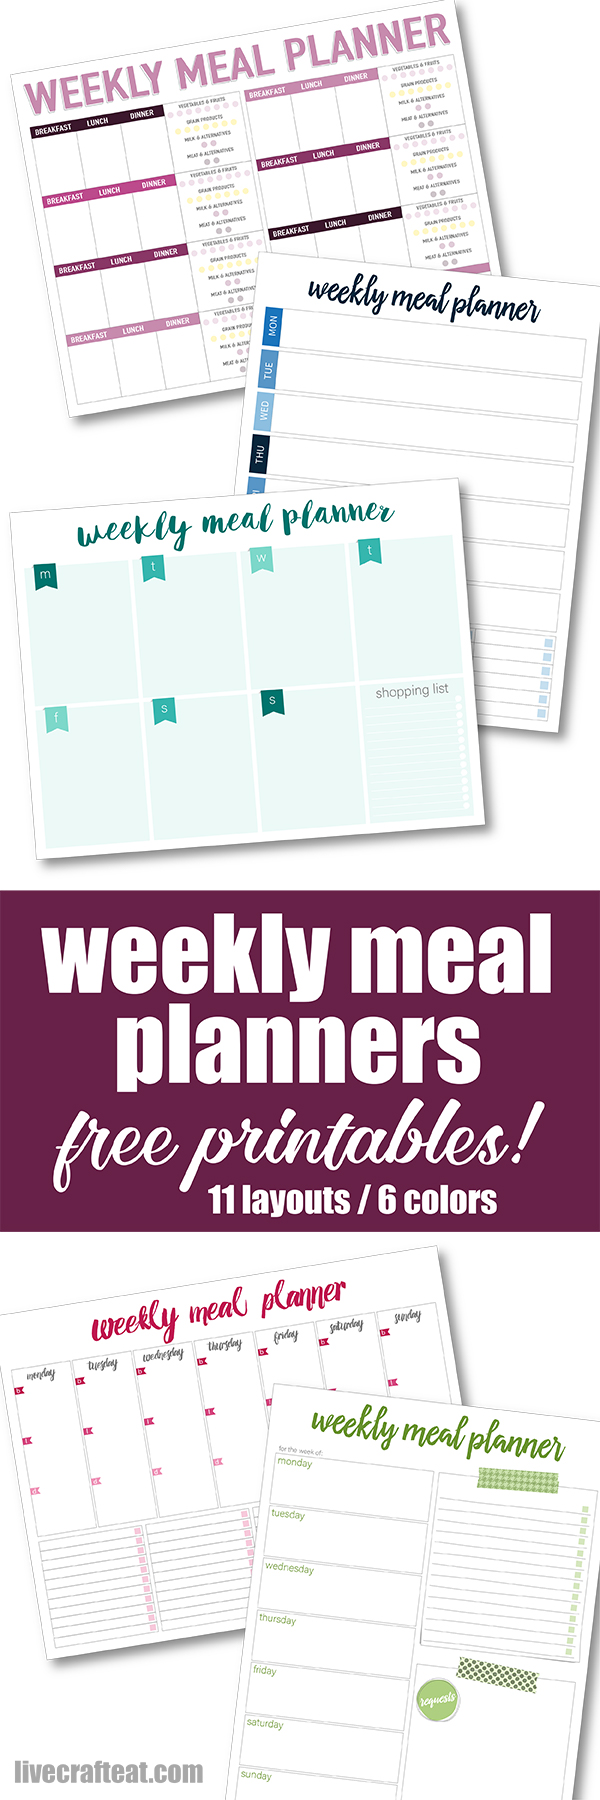 weekly meal planner pinterest image